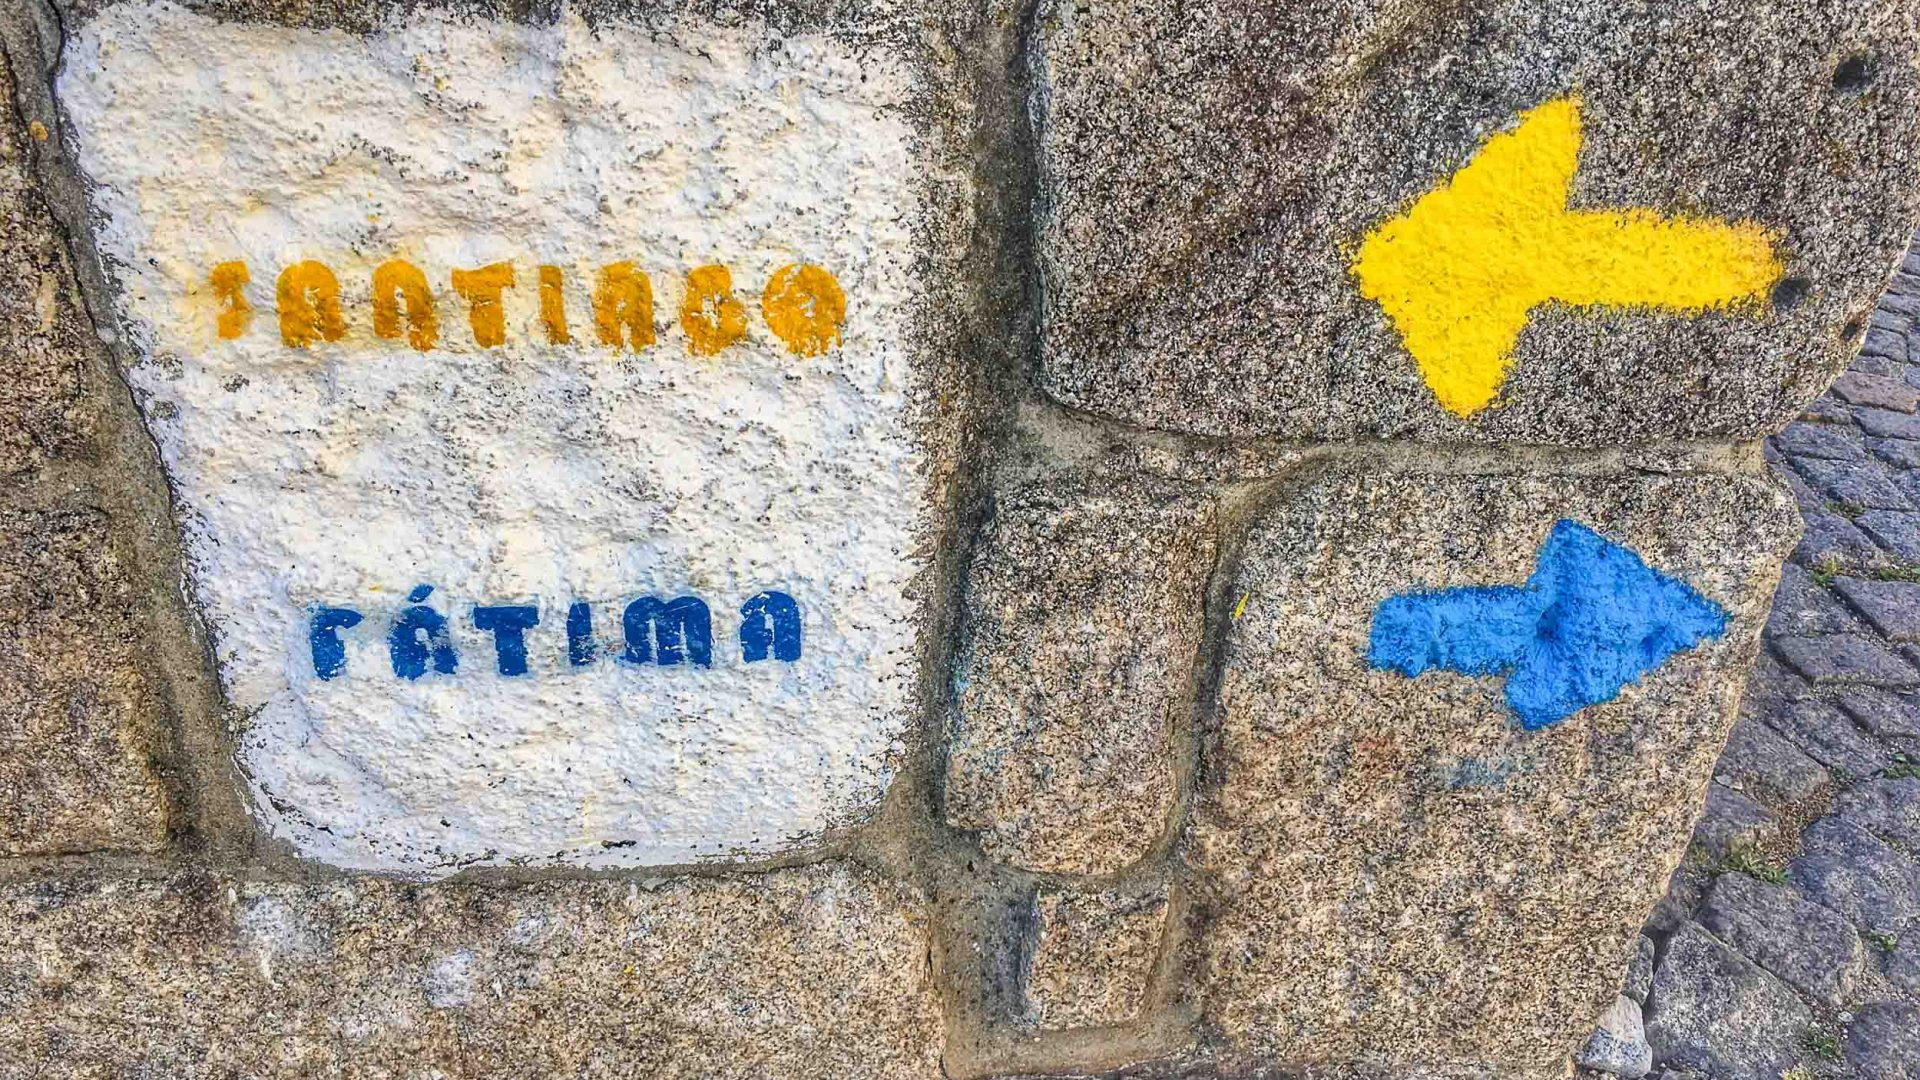 Pilgrims and hikers follow the yellow arrows to find their way to Santiago de Compostela.